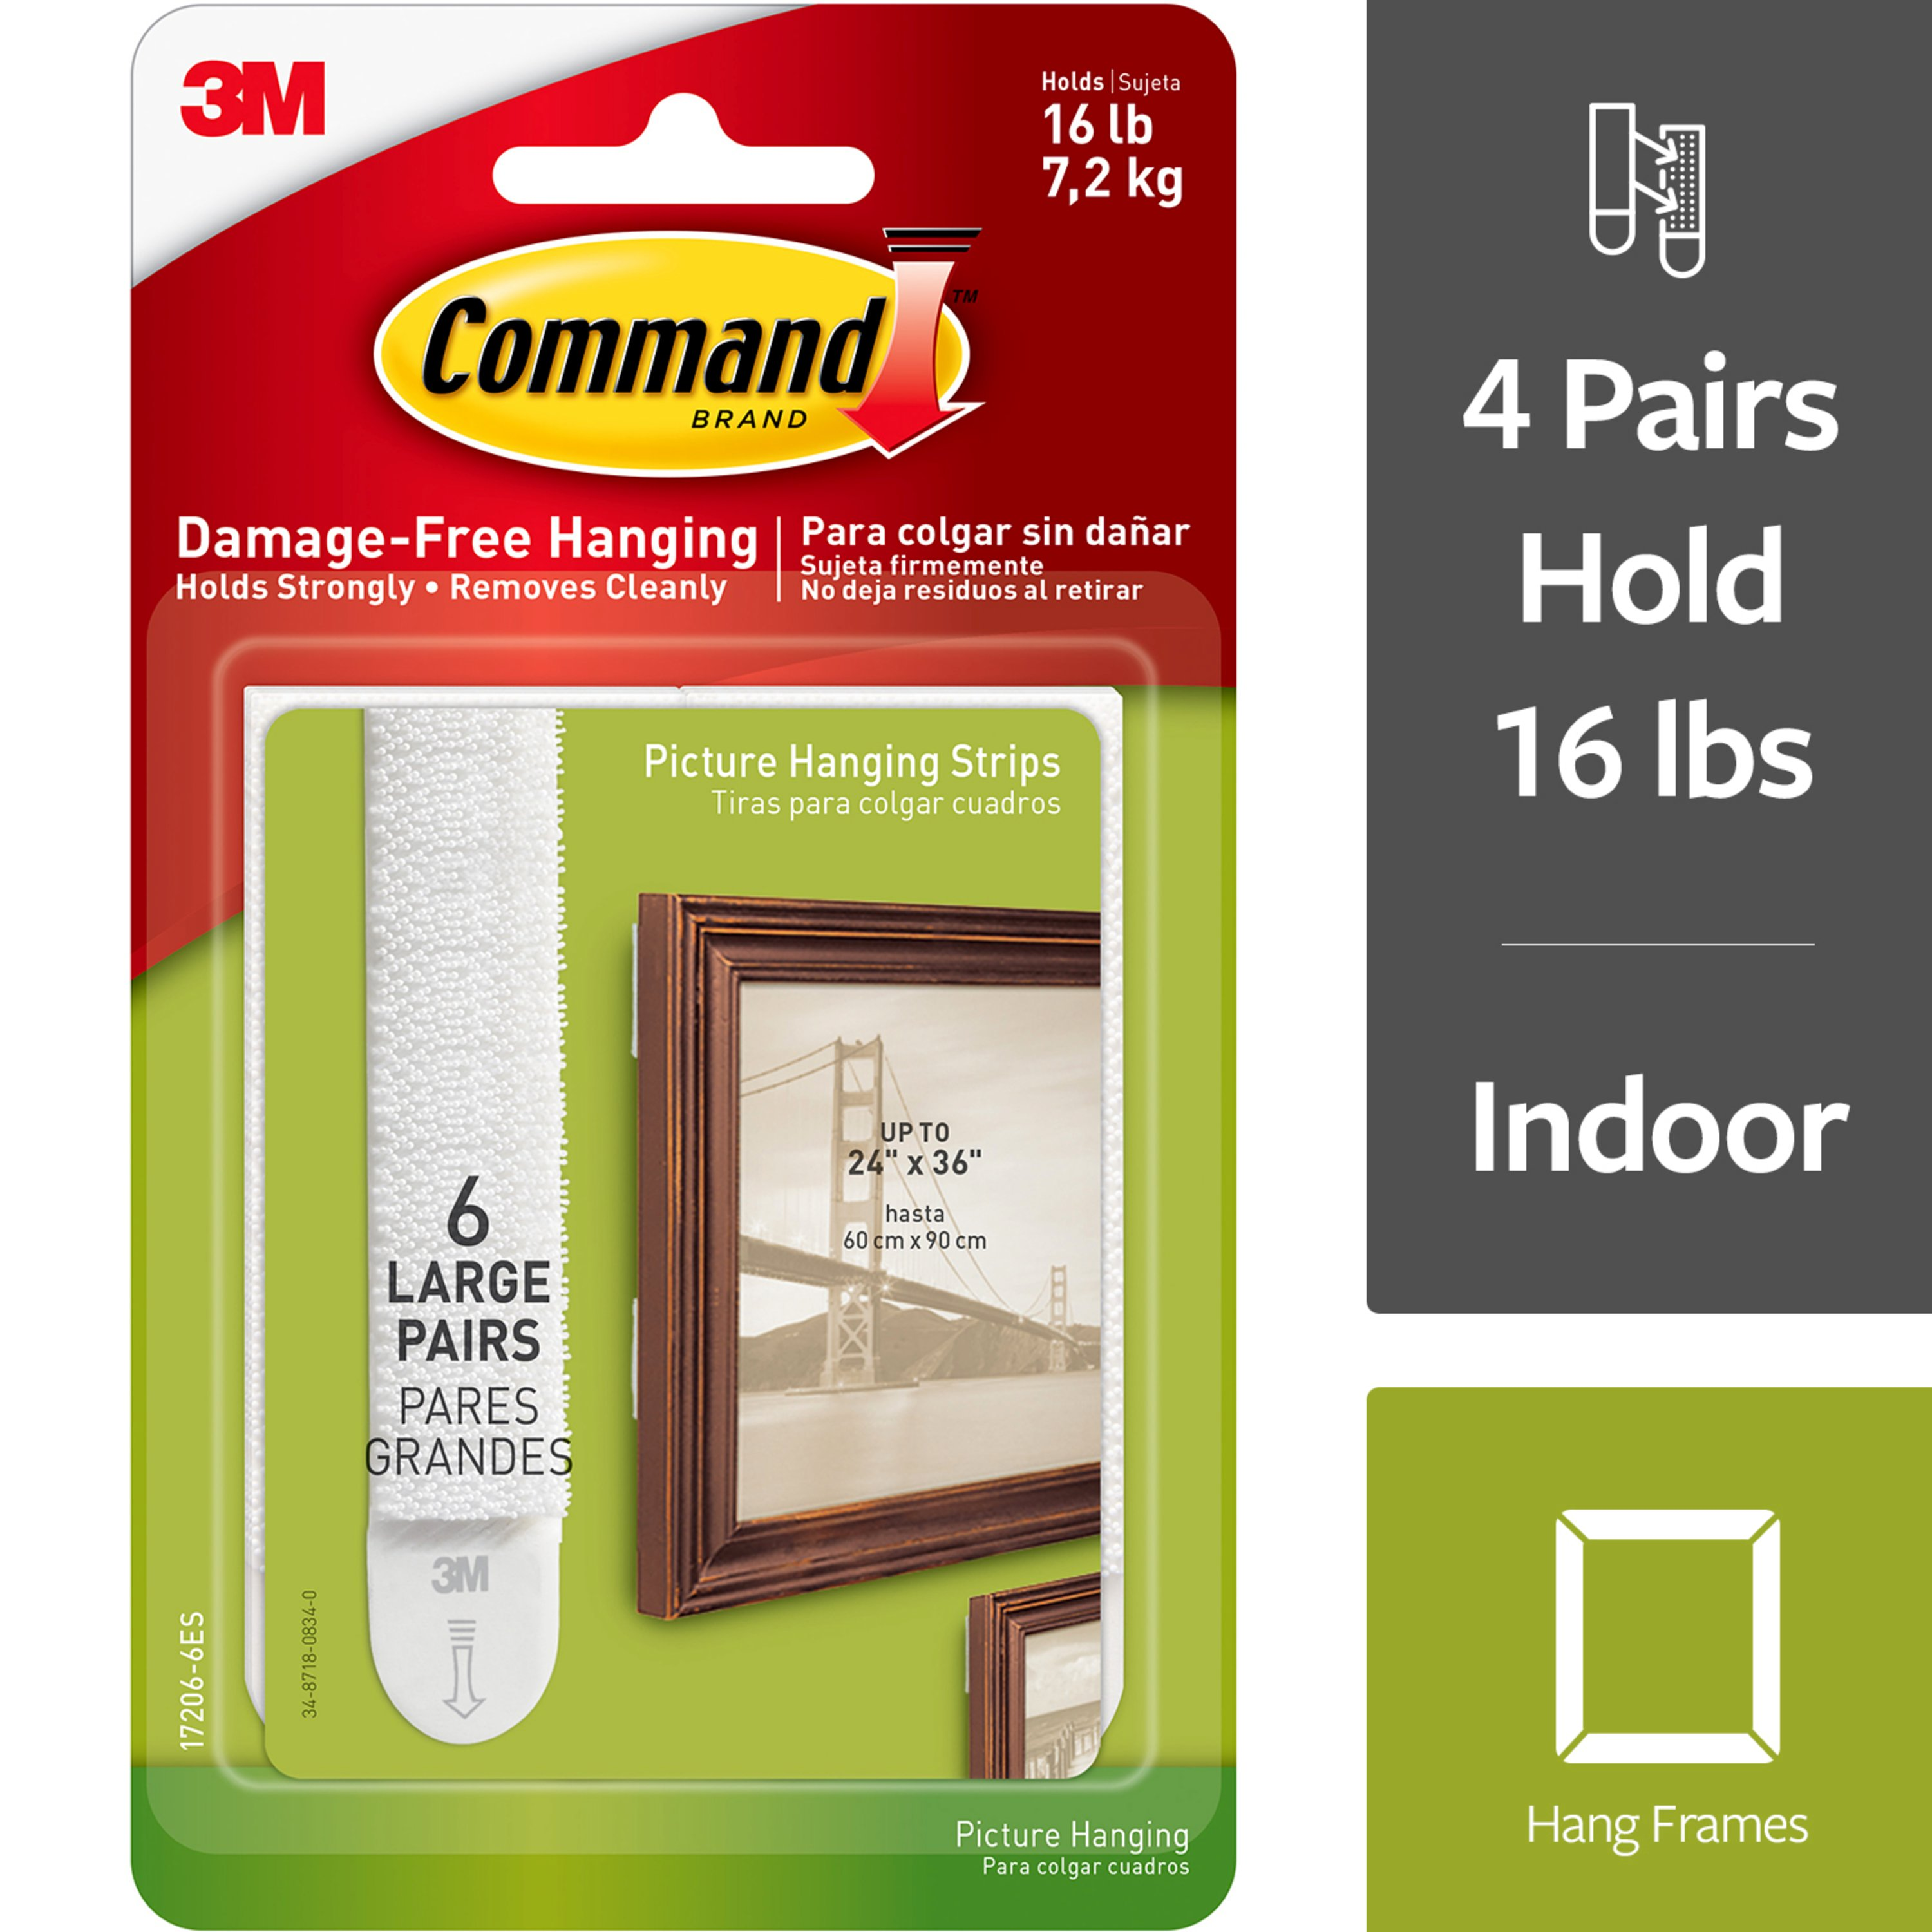 3M Command Picture Hanging Strips, White, Decorate without Tools, Create Gallery Walls, Multi-Pack, Hangs up to 3 frames